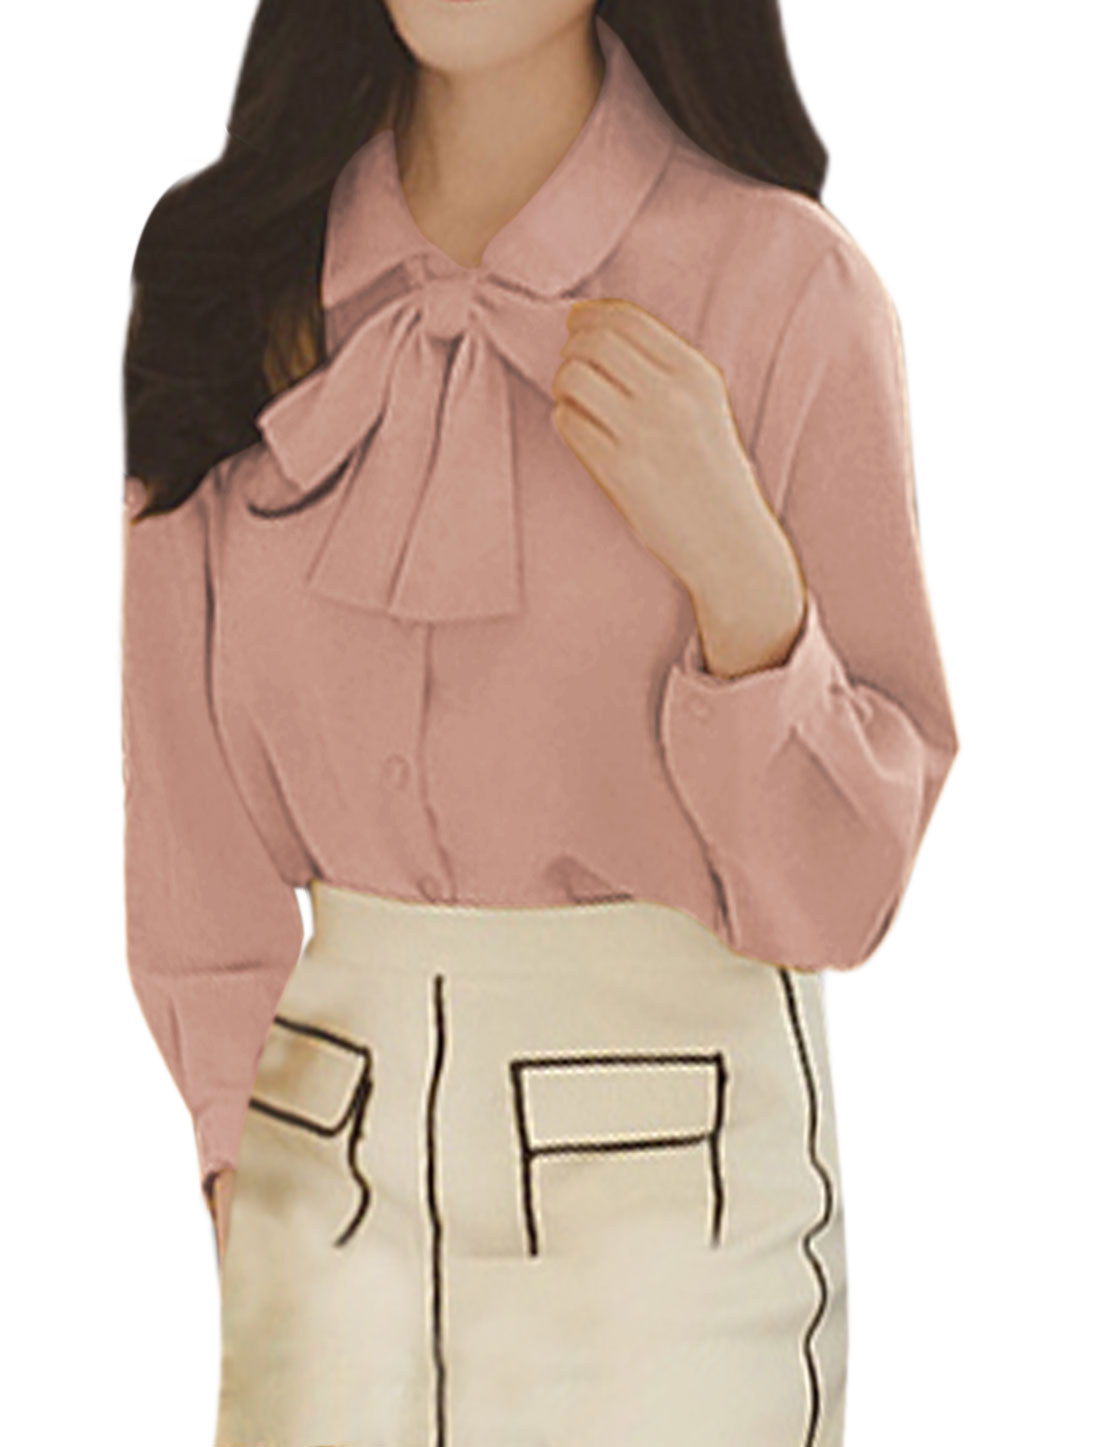 Women Point Collar Single Breasted Casual Shirt w Self Tie String Pink XS